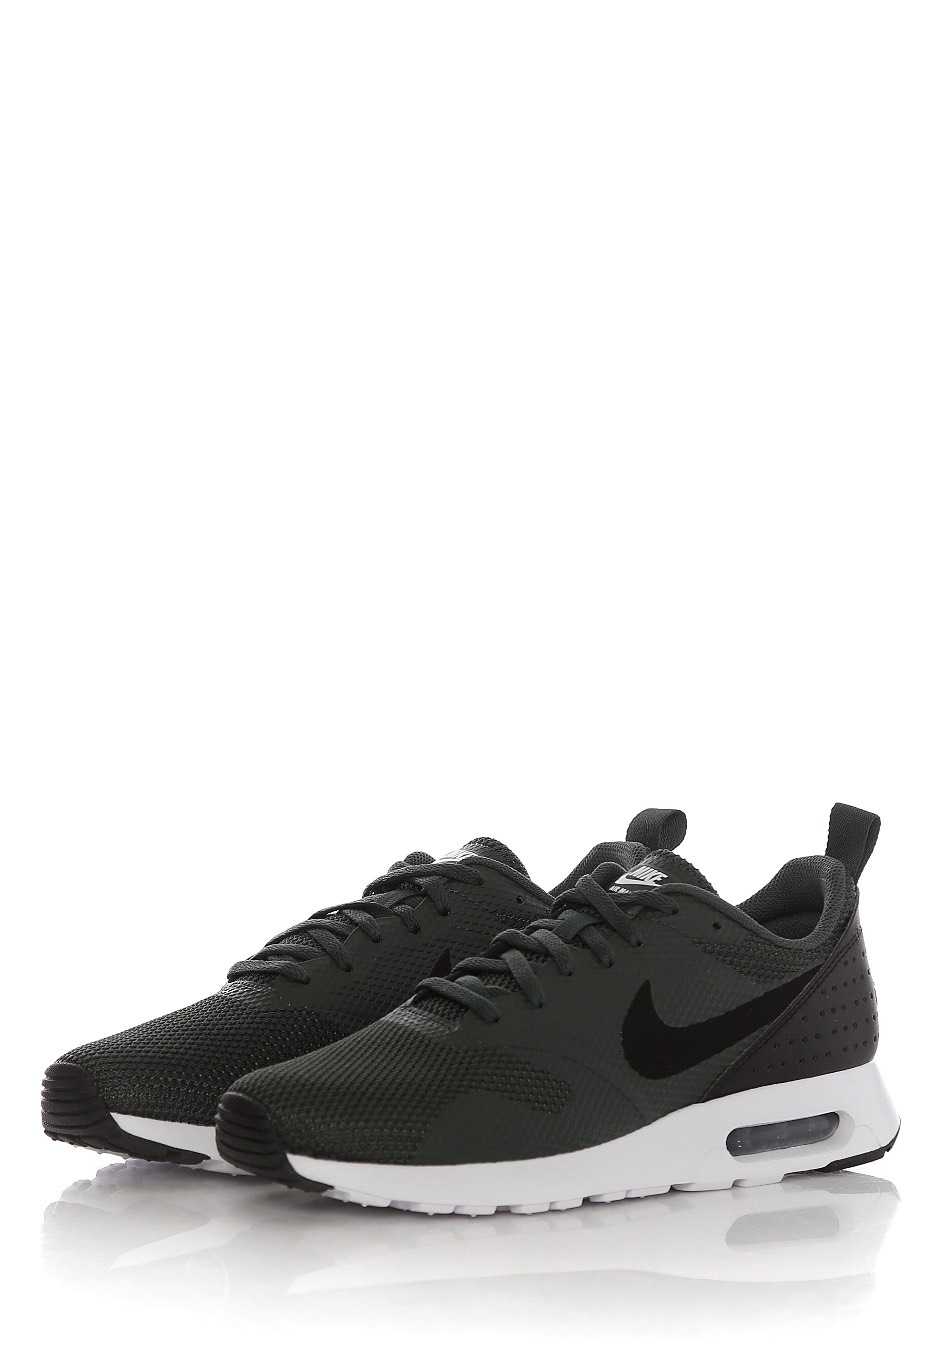 reputable site d7af3 01a79 ... hot nike air max tavas grove green black white shoes db003 23080